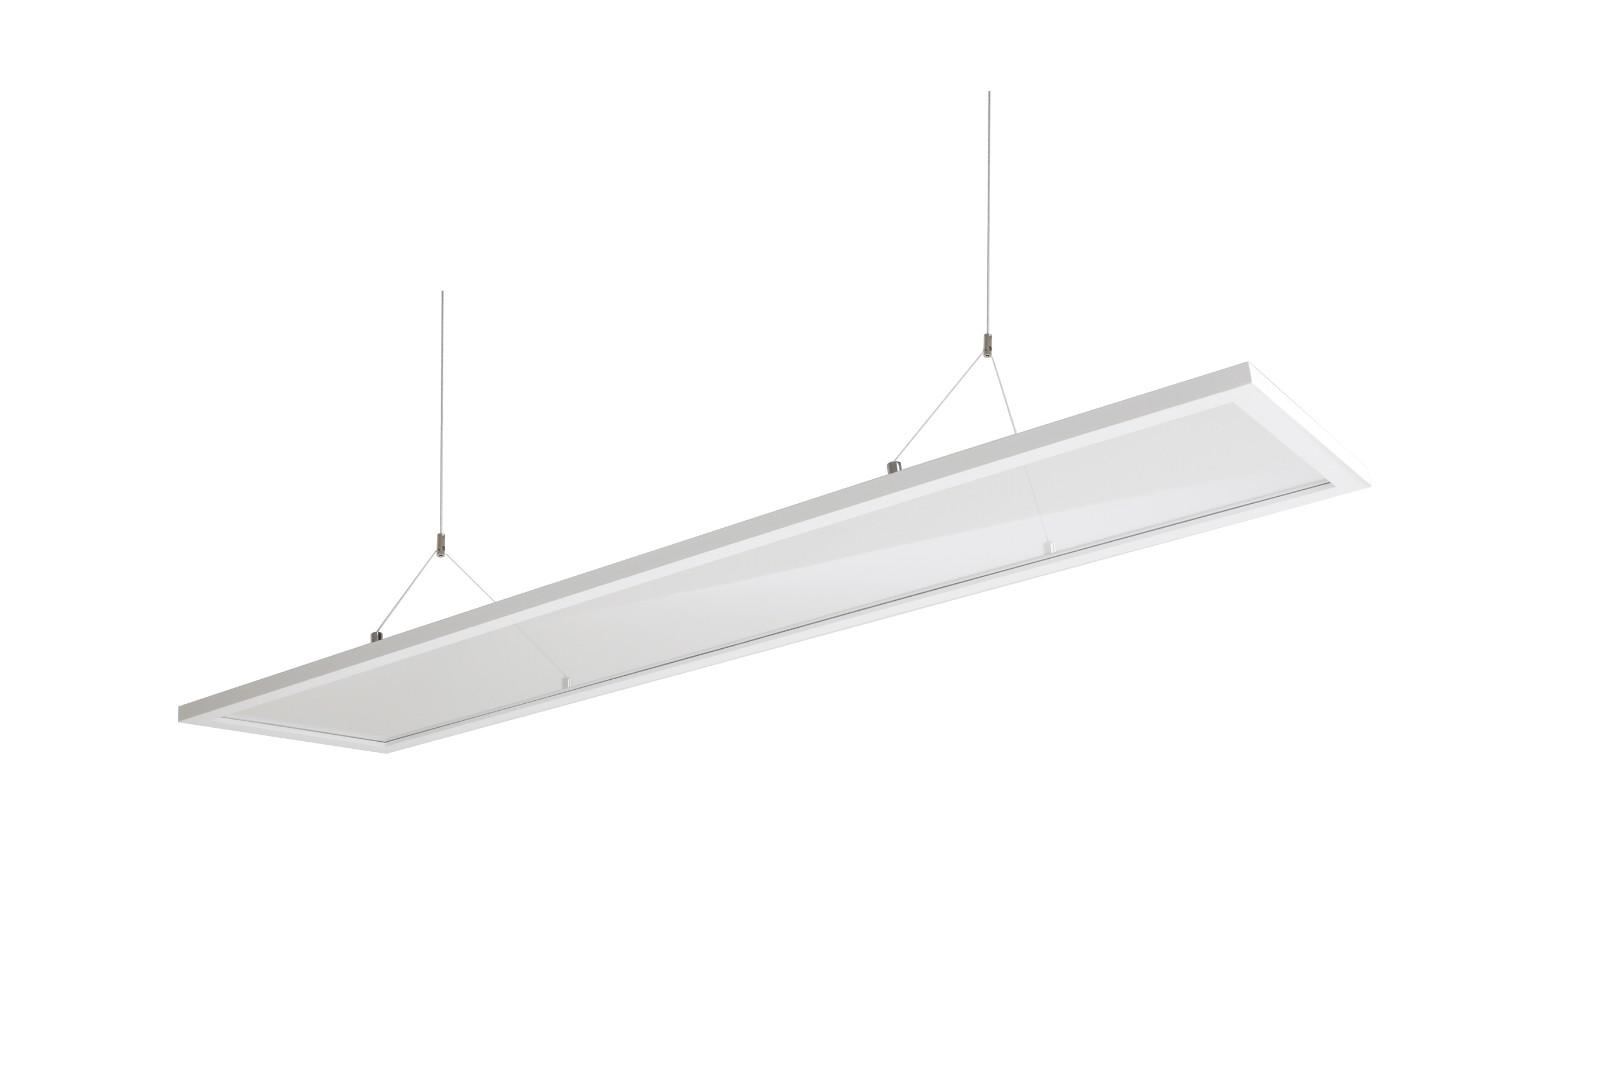 Dolight LED Panel lumen led panel ceiling lights factory for boardrooms-1